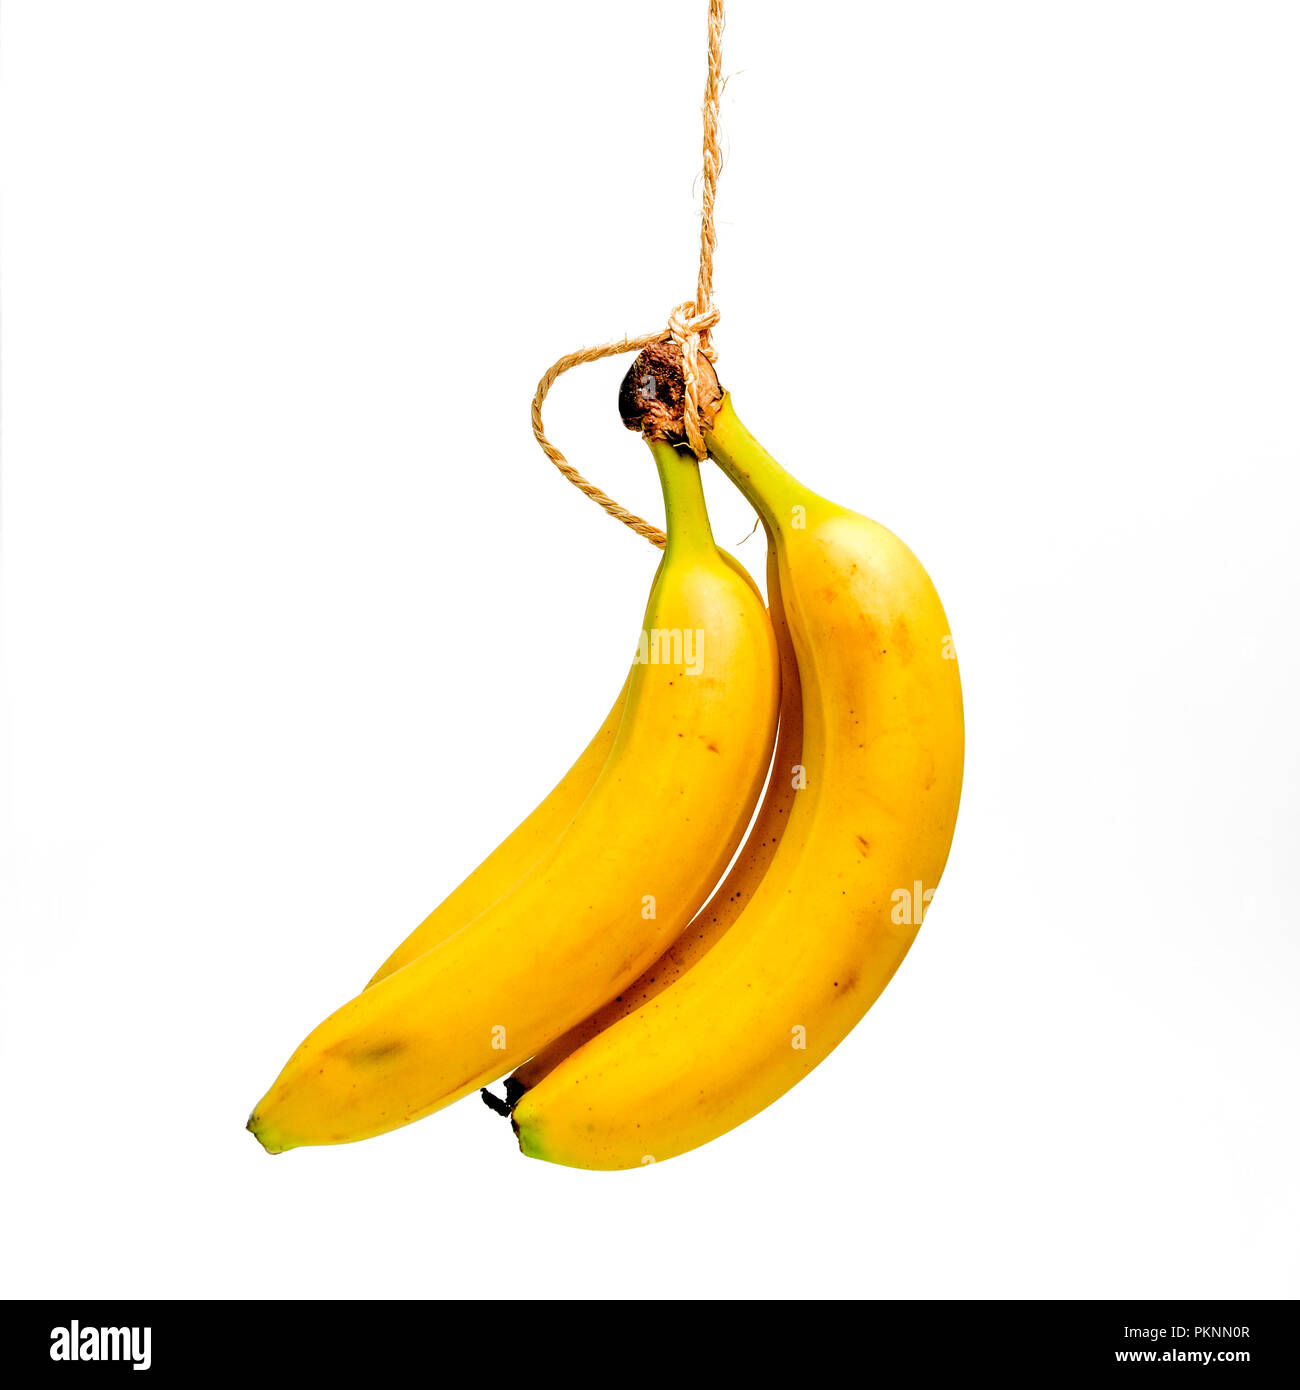 Bananas on a white background, cutout - Stock Image